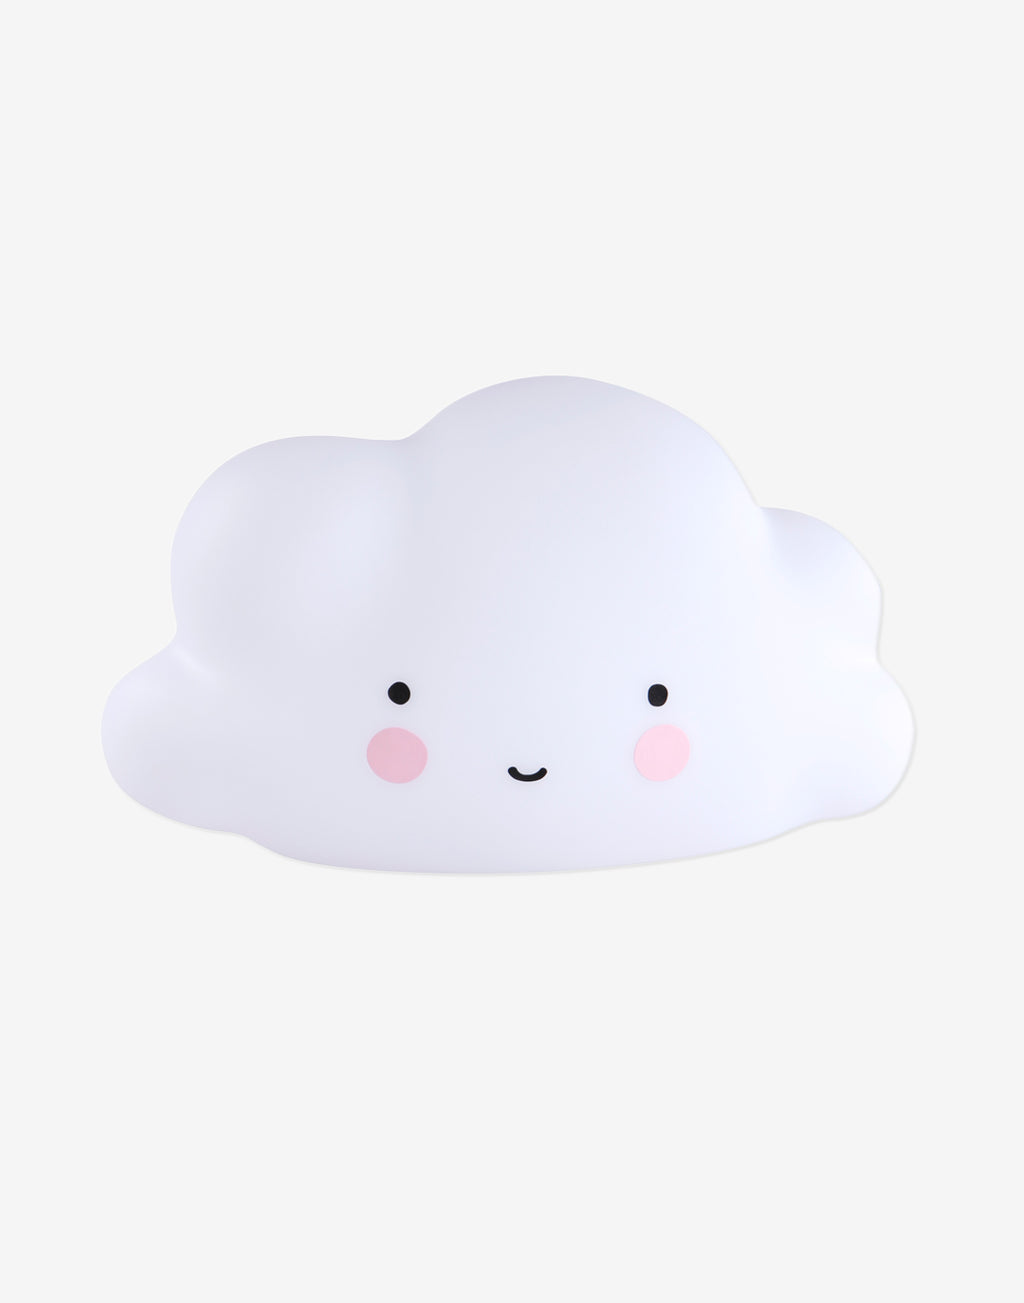 A Little Lovely Company - Mini Cloud Light - White